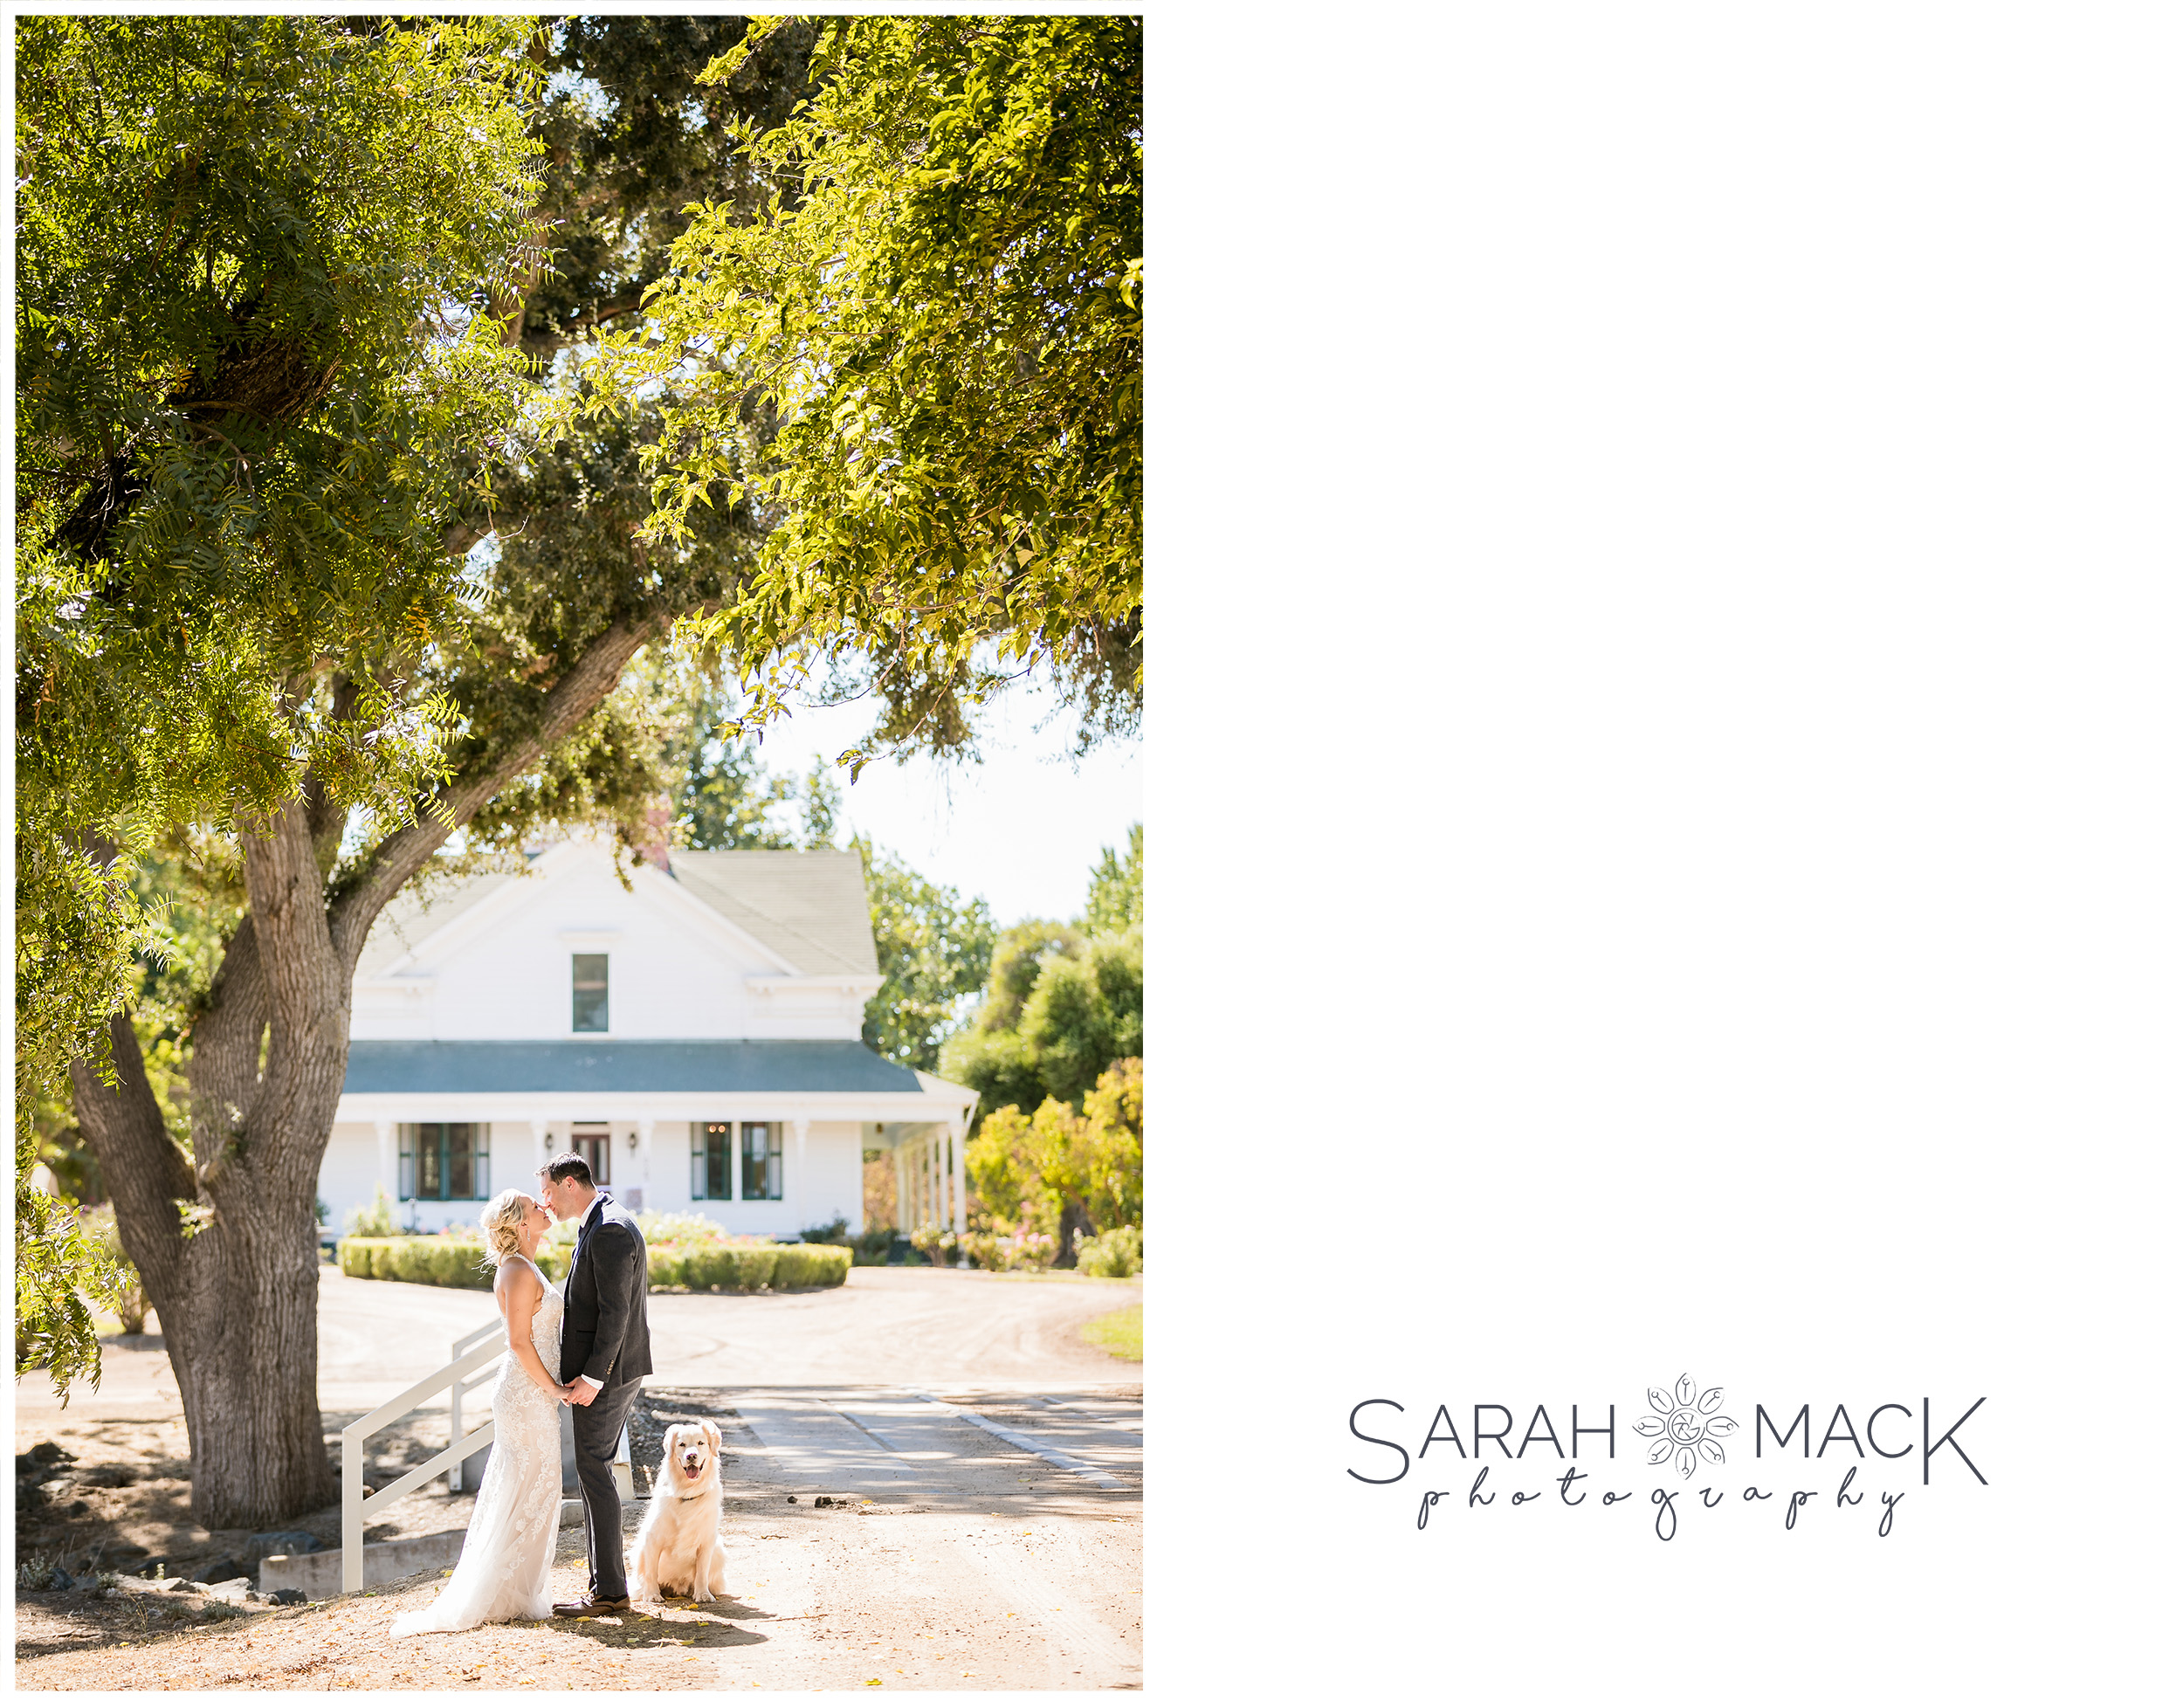 MA-Chandler-Ranch-Paso-Robles-Wedding-Photography-36.jpg